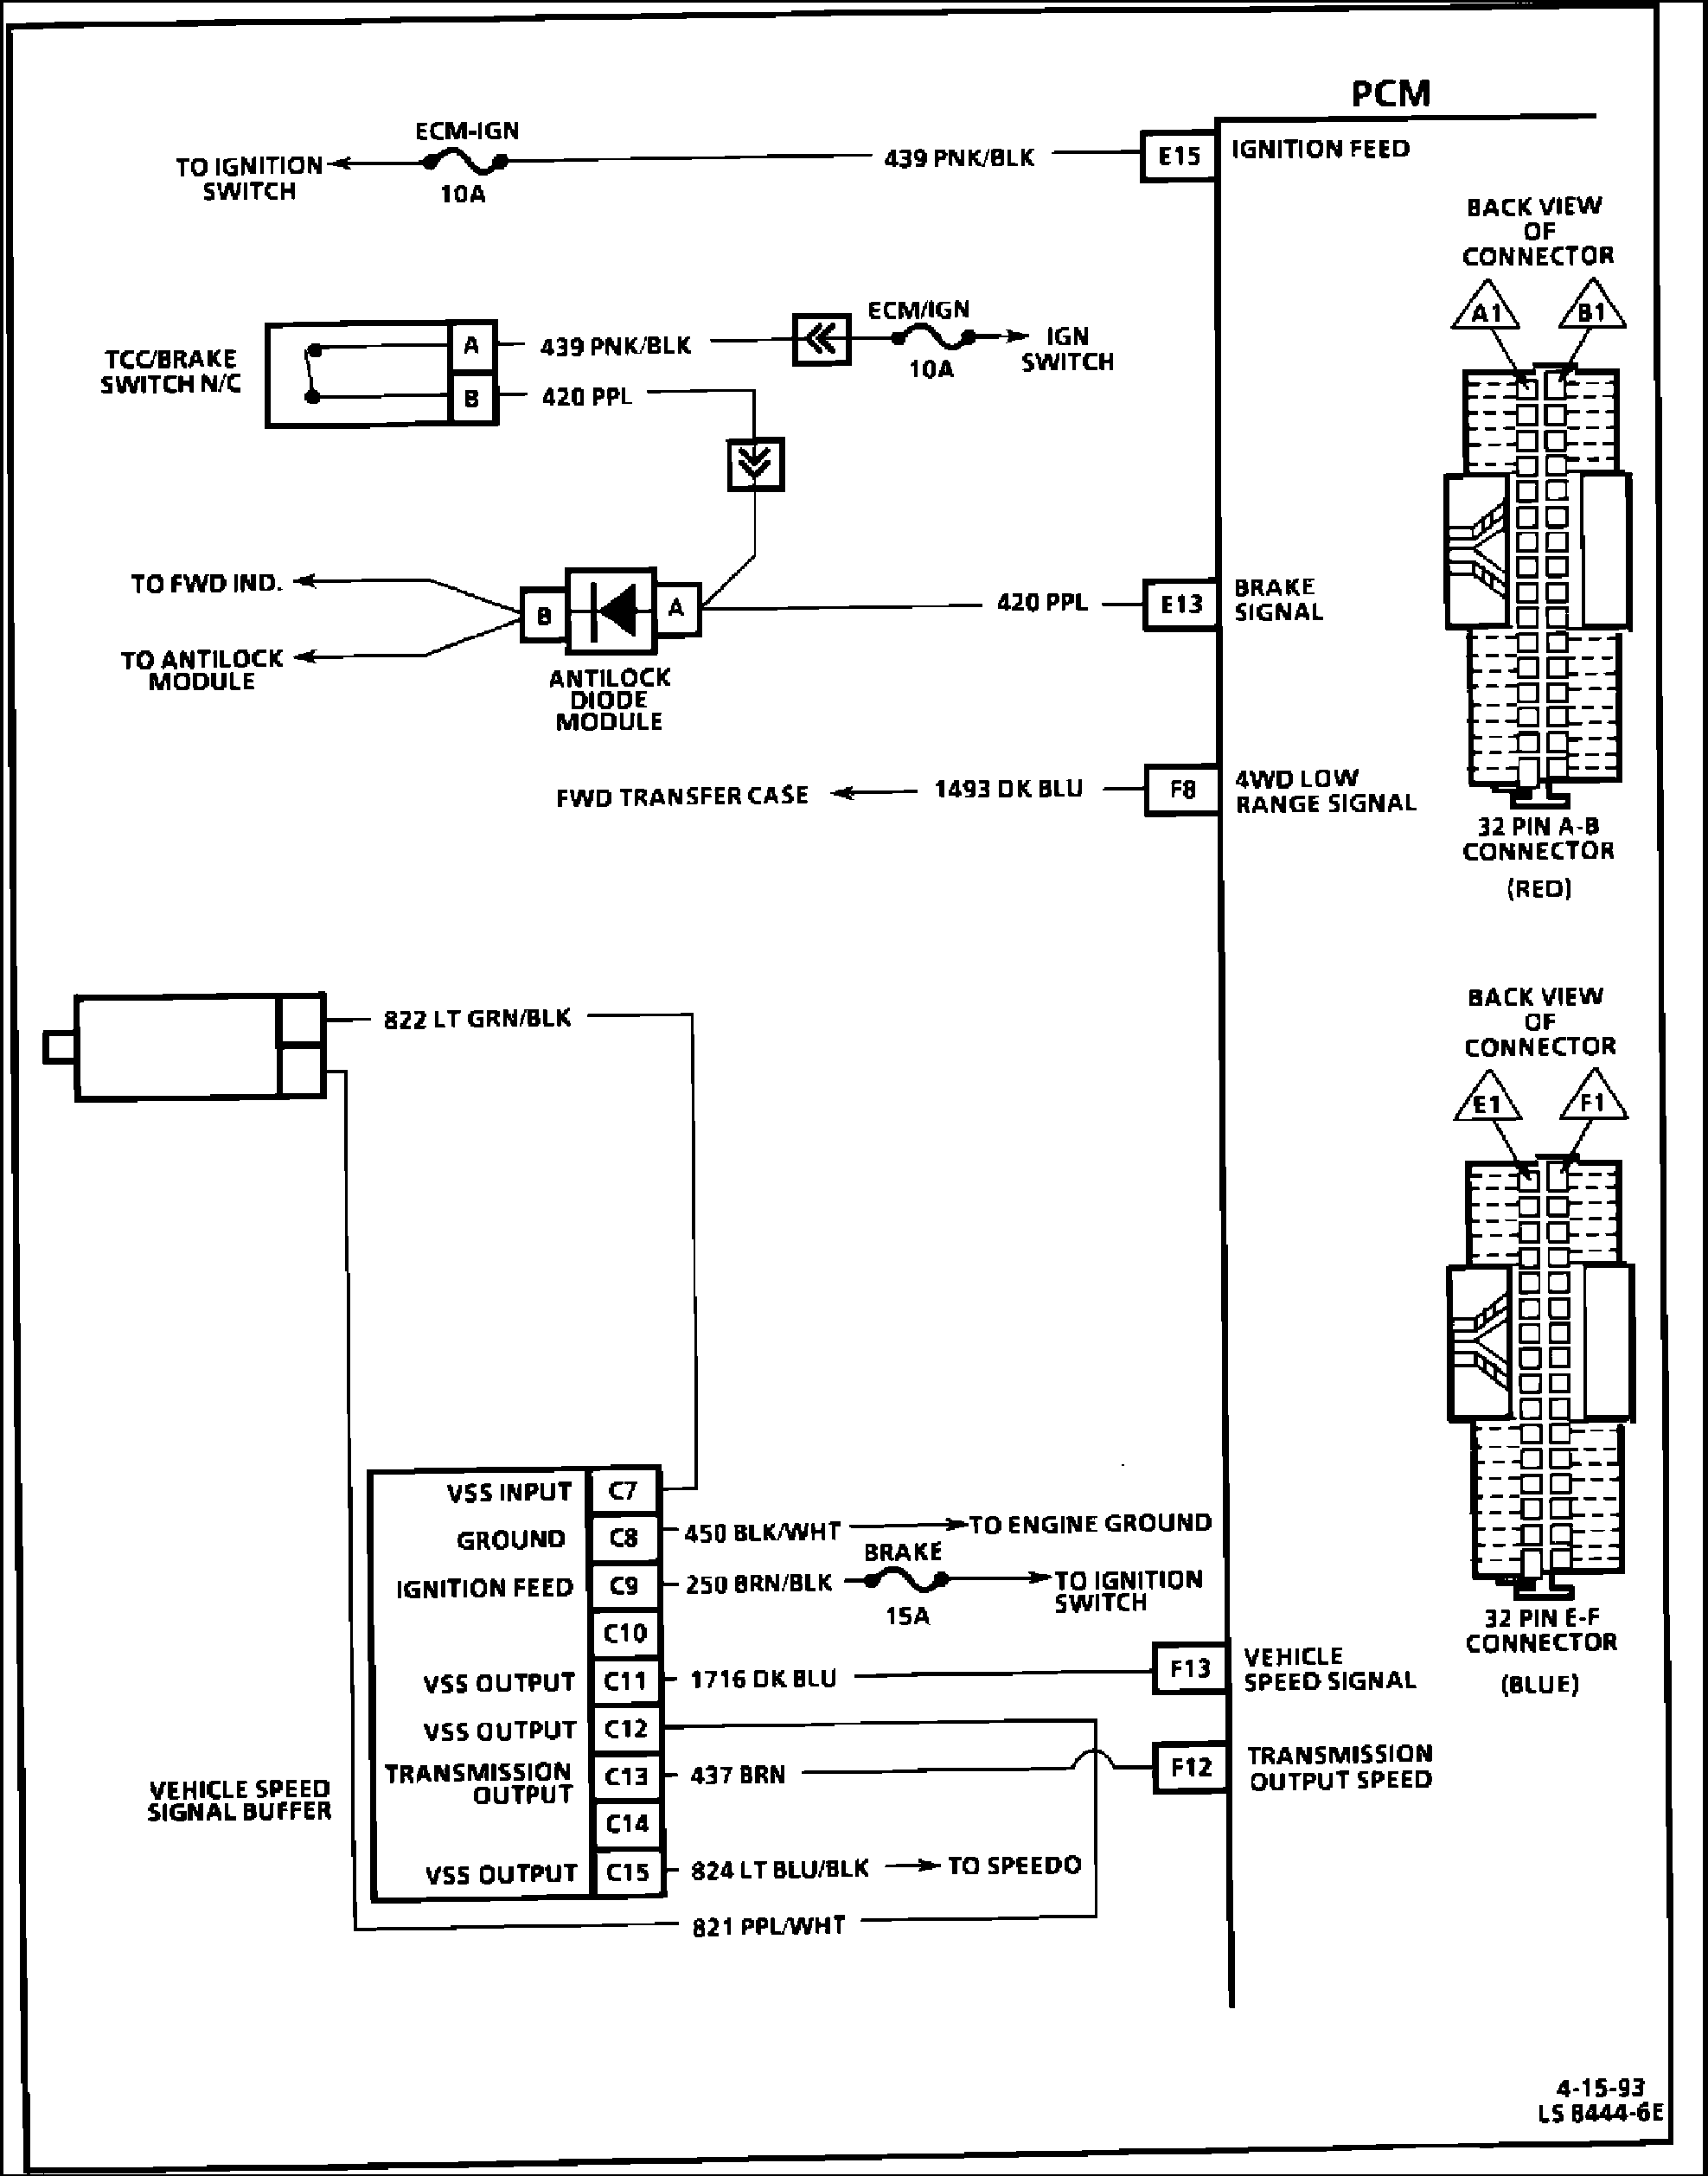 Gm Shifter Wiring Diagram 77 Toyota Pickup Wiring Diagram For Wiring Diagram Schematics